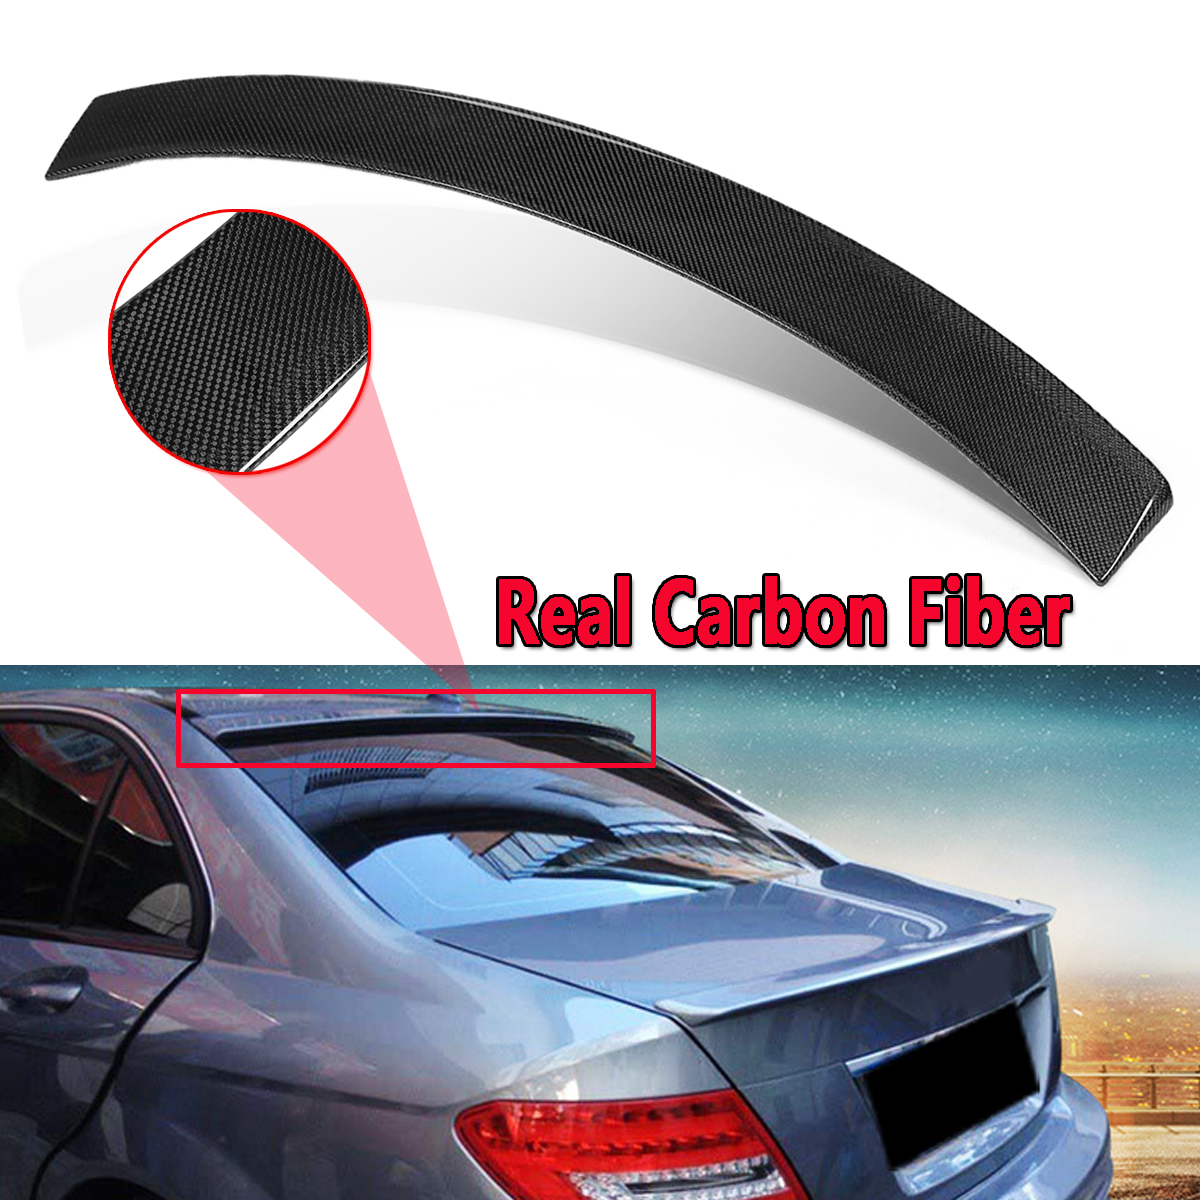 Car Real Carbon Fiber Roof Spoiler Lid For Mercedes-Benz W204 C Class Sedan 2008-2014 Rear Wing Spoiler Rear Trunk Roof Wing carbon fiber rear roof spoiler window wing frp black for mercedes benz c class s205 wagon hatchblack 4 door 15 18 not for amg